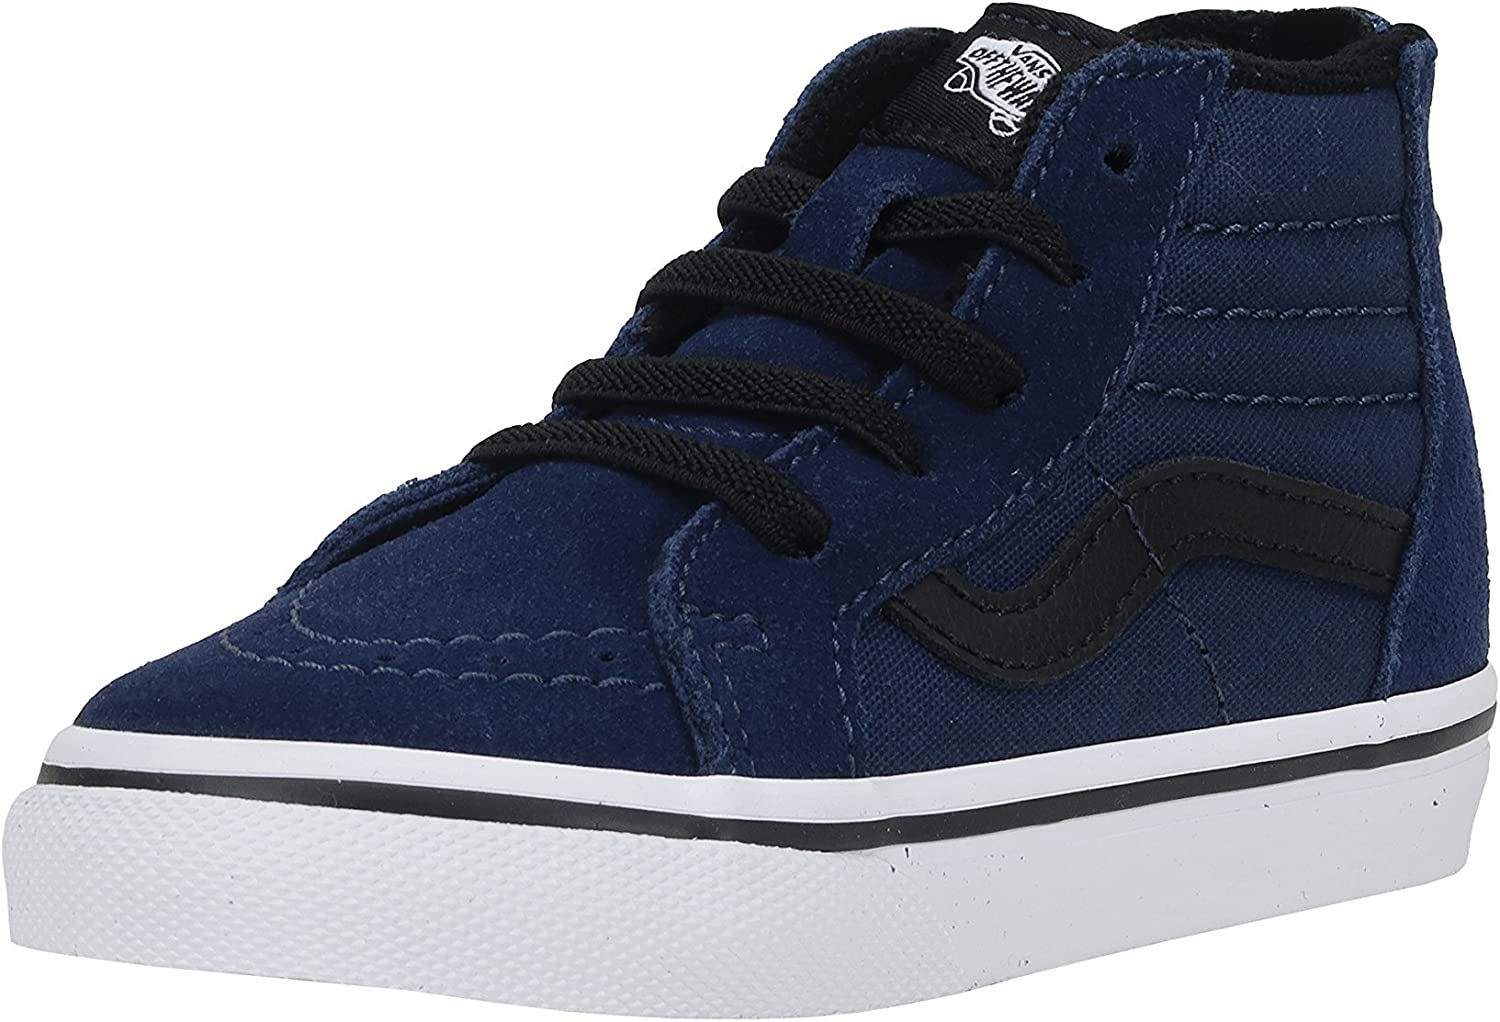 Vans Toddler SK8 Hi Zip Skateboarding Shoes